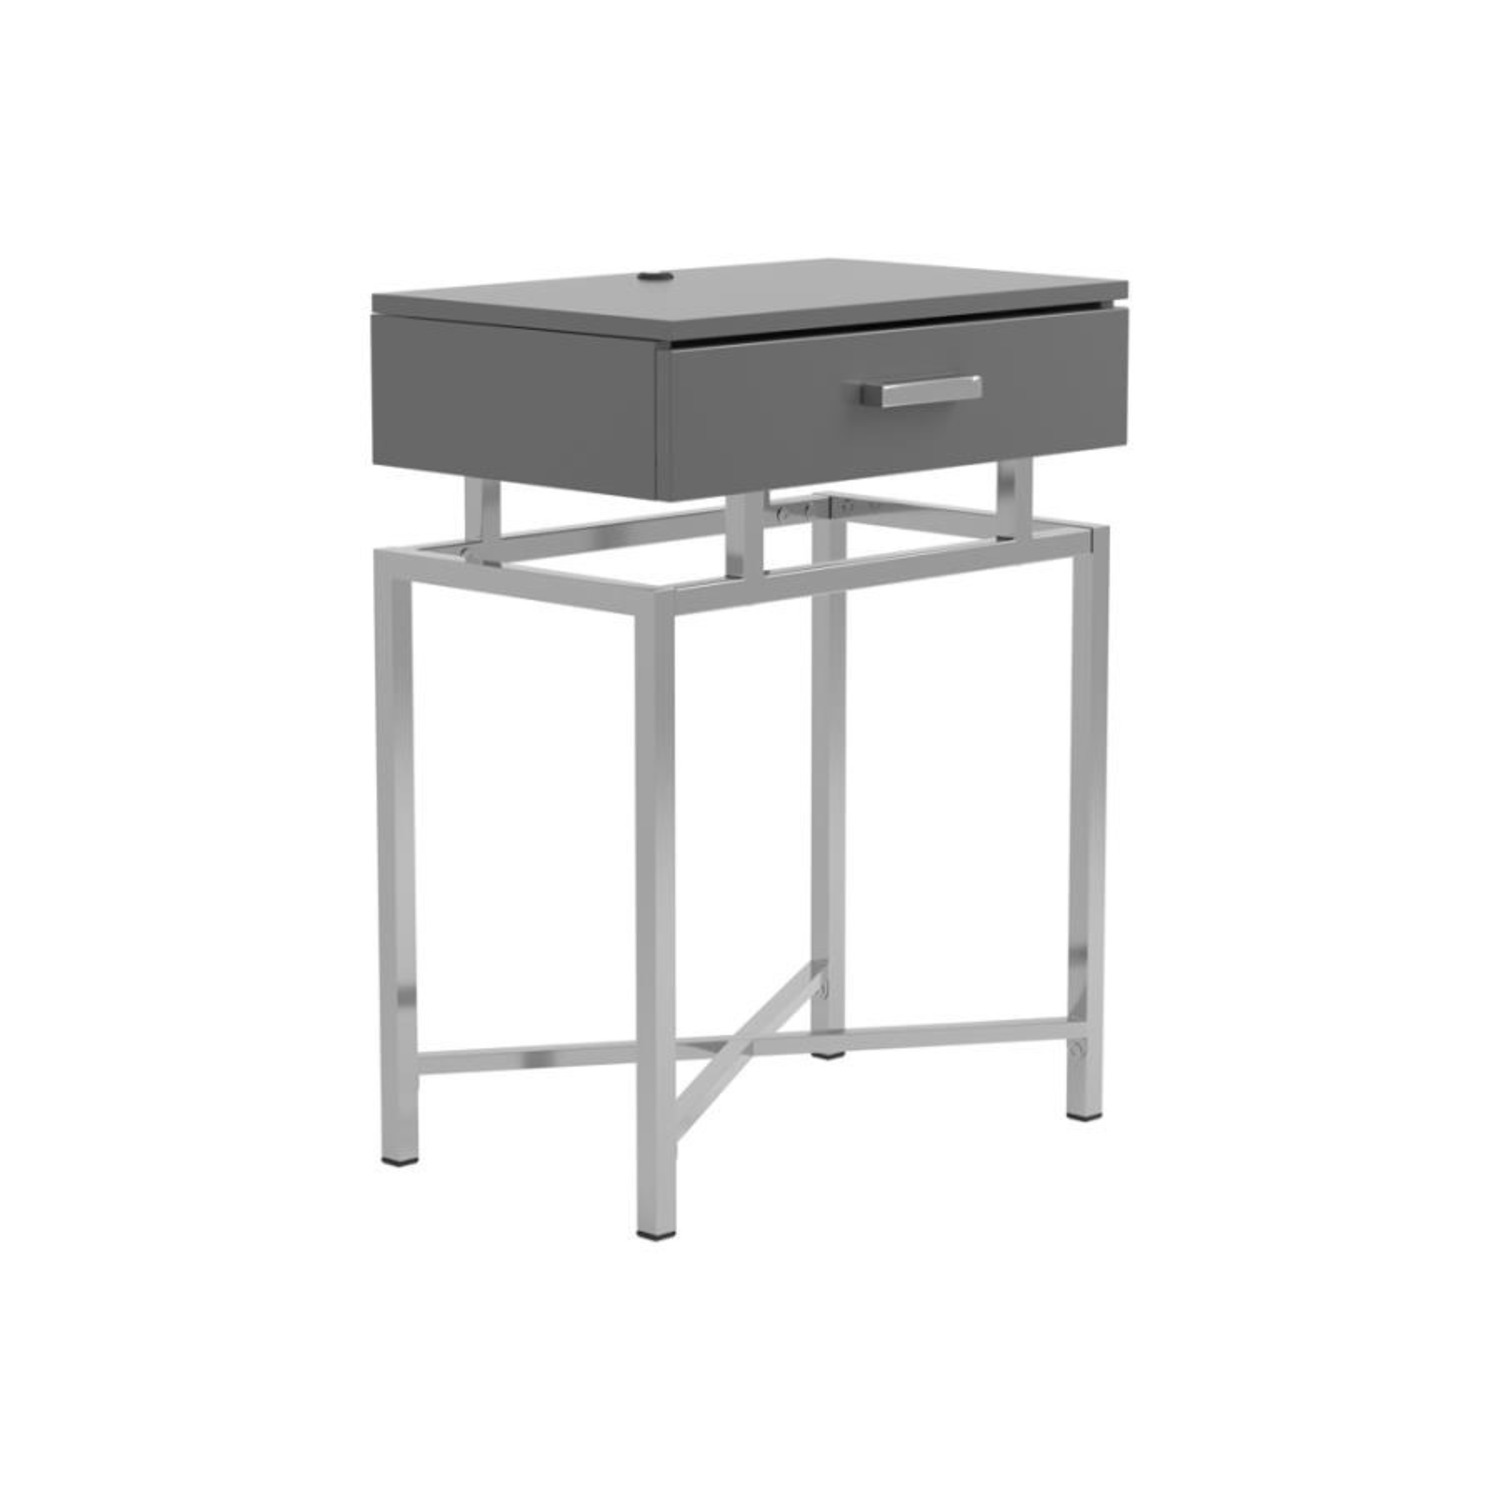 Accent Table In Grey High Gloss Finish - image-0